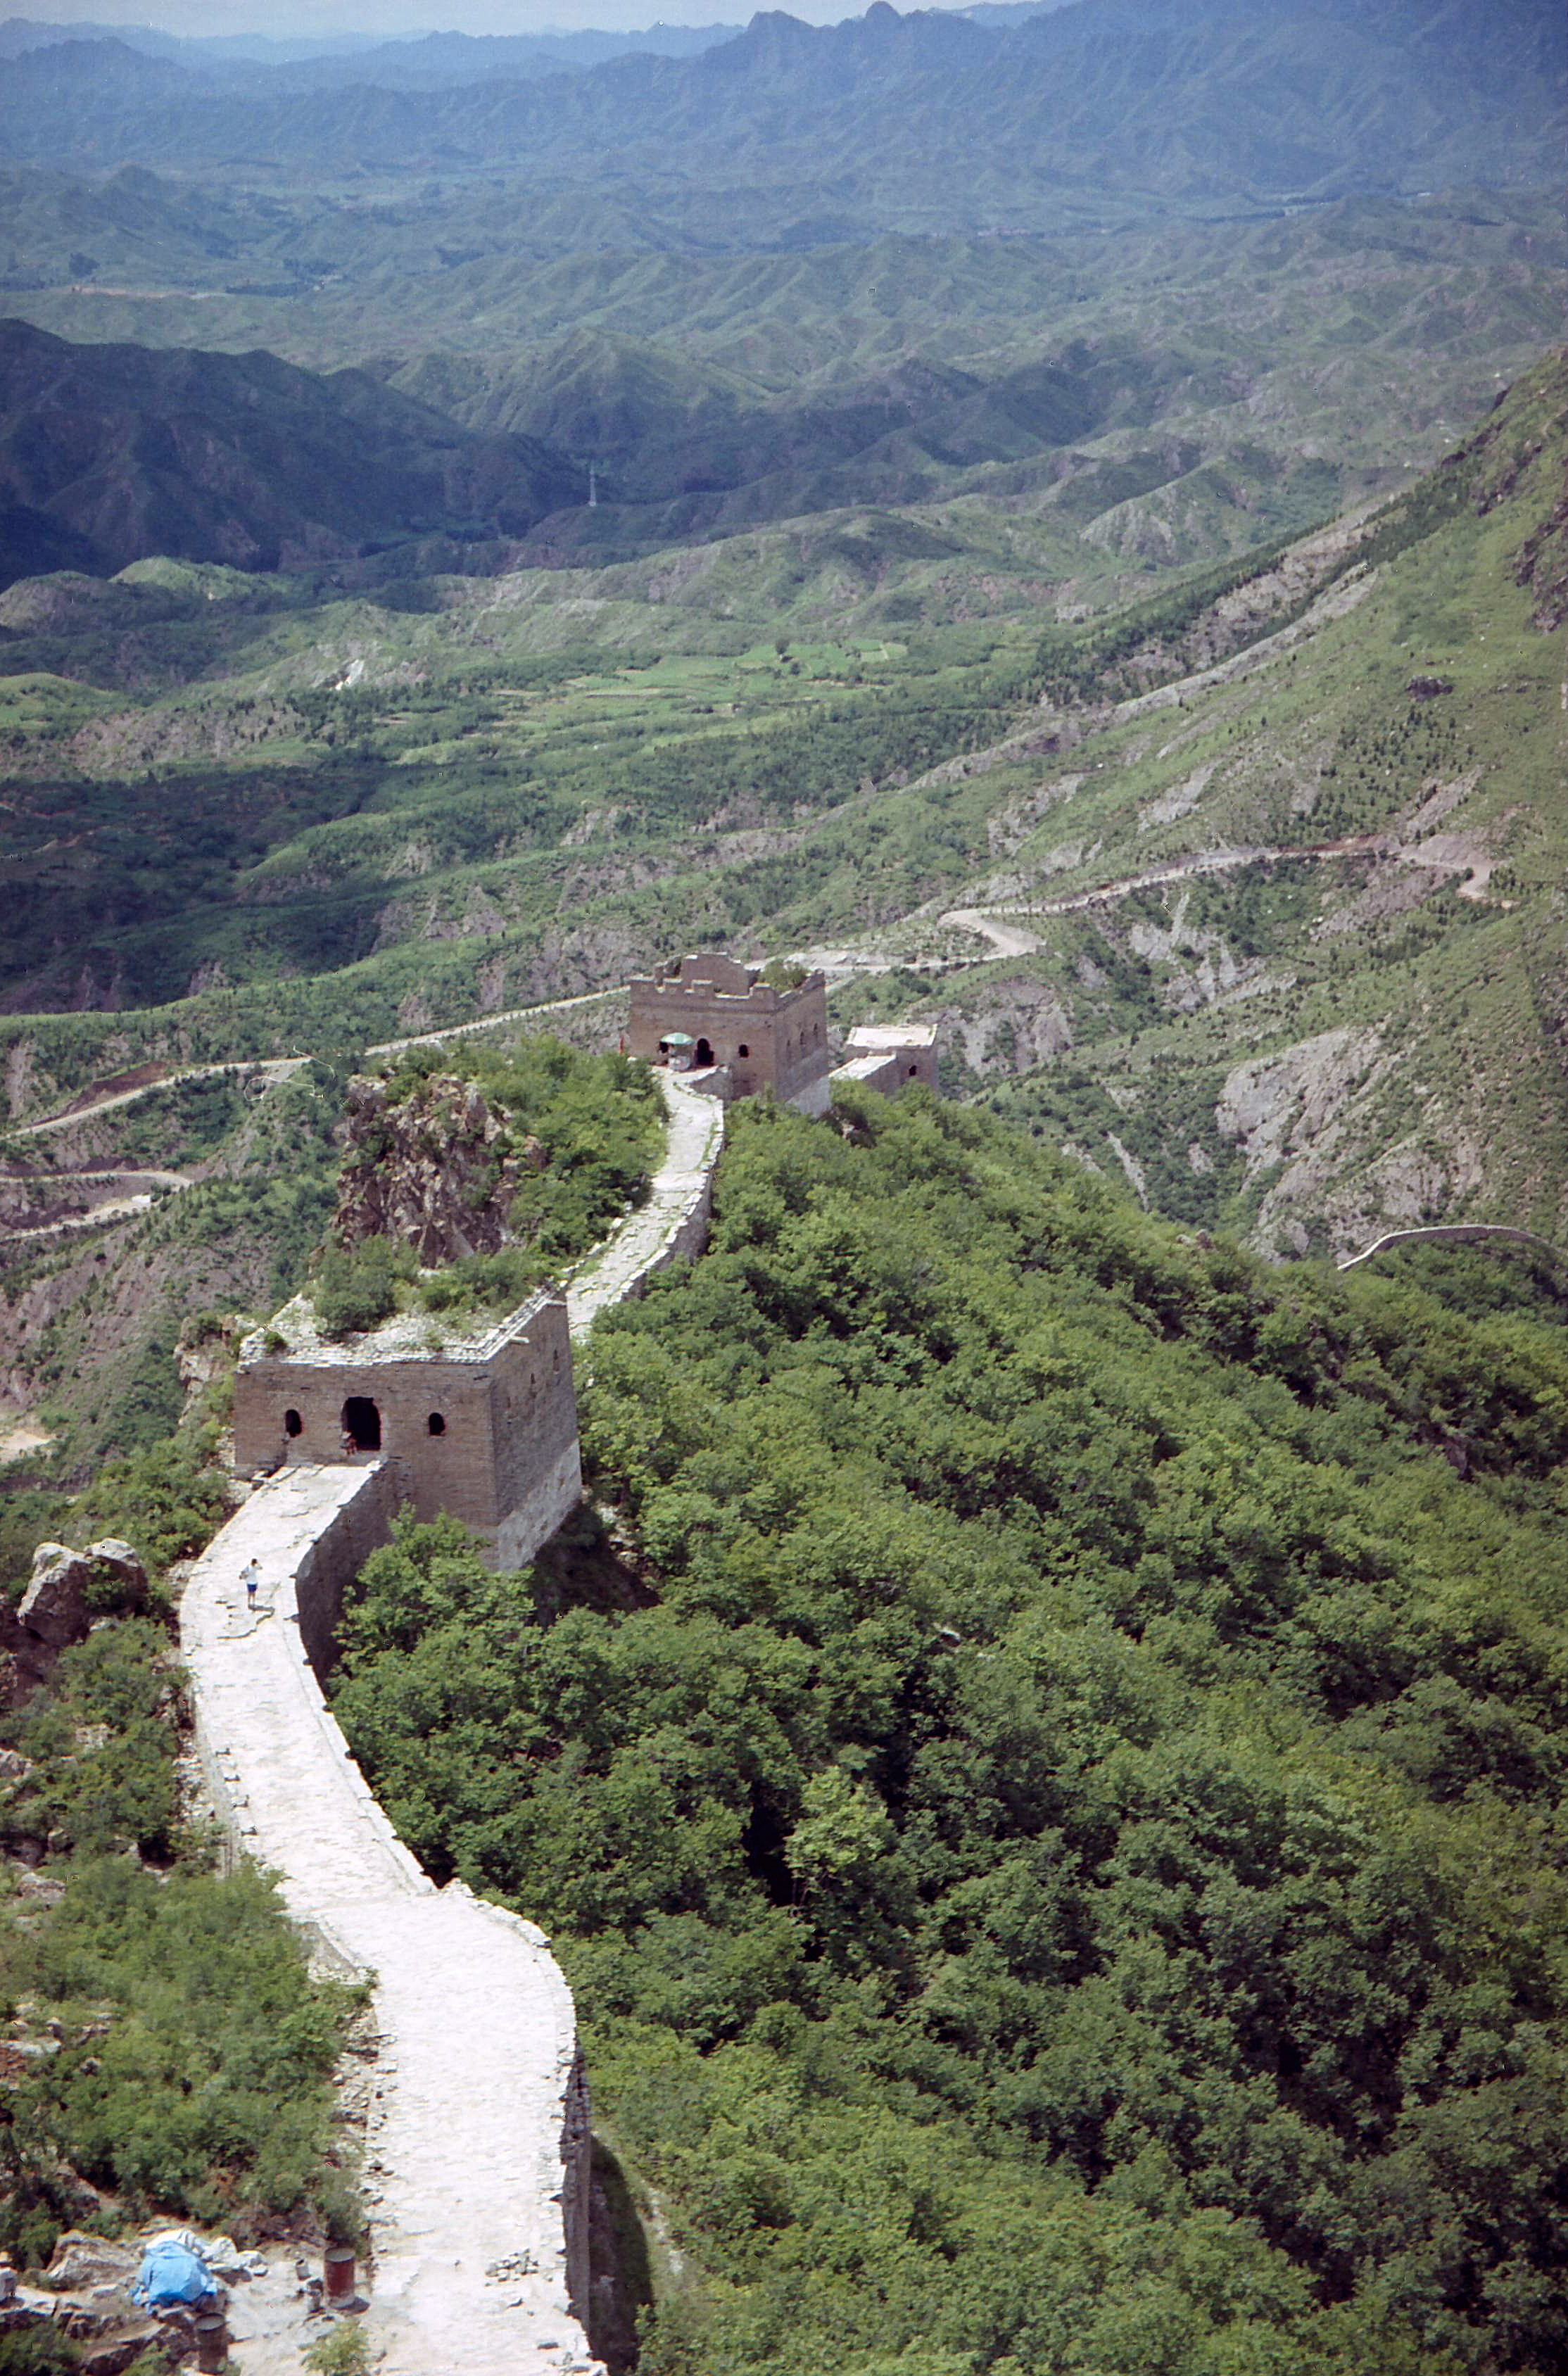 Great Wall of China, Beijing China 1.jpg - Great Wall of China